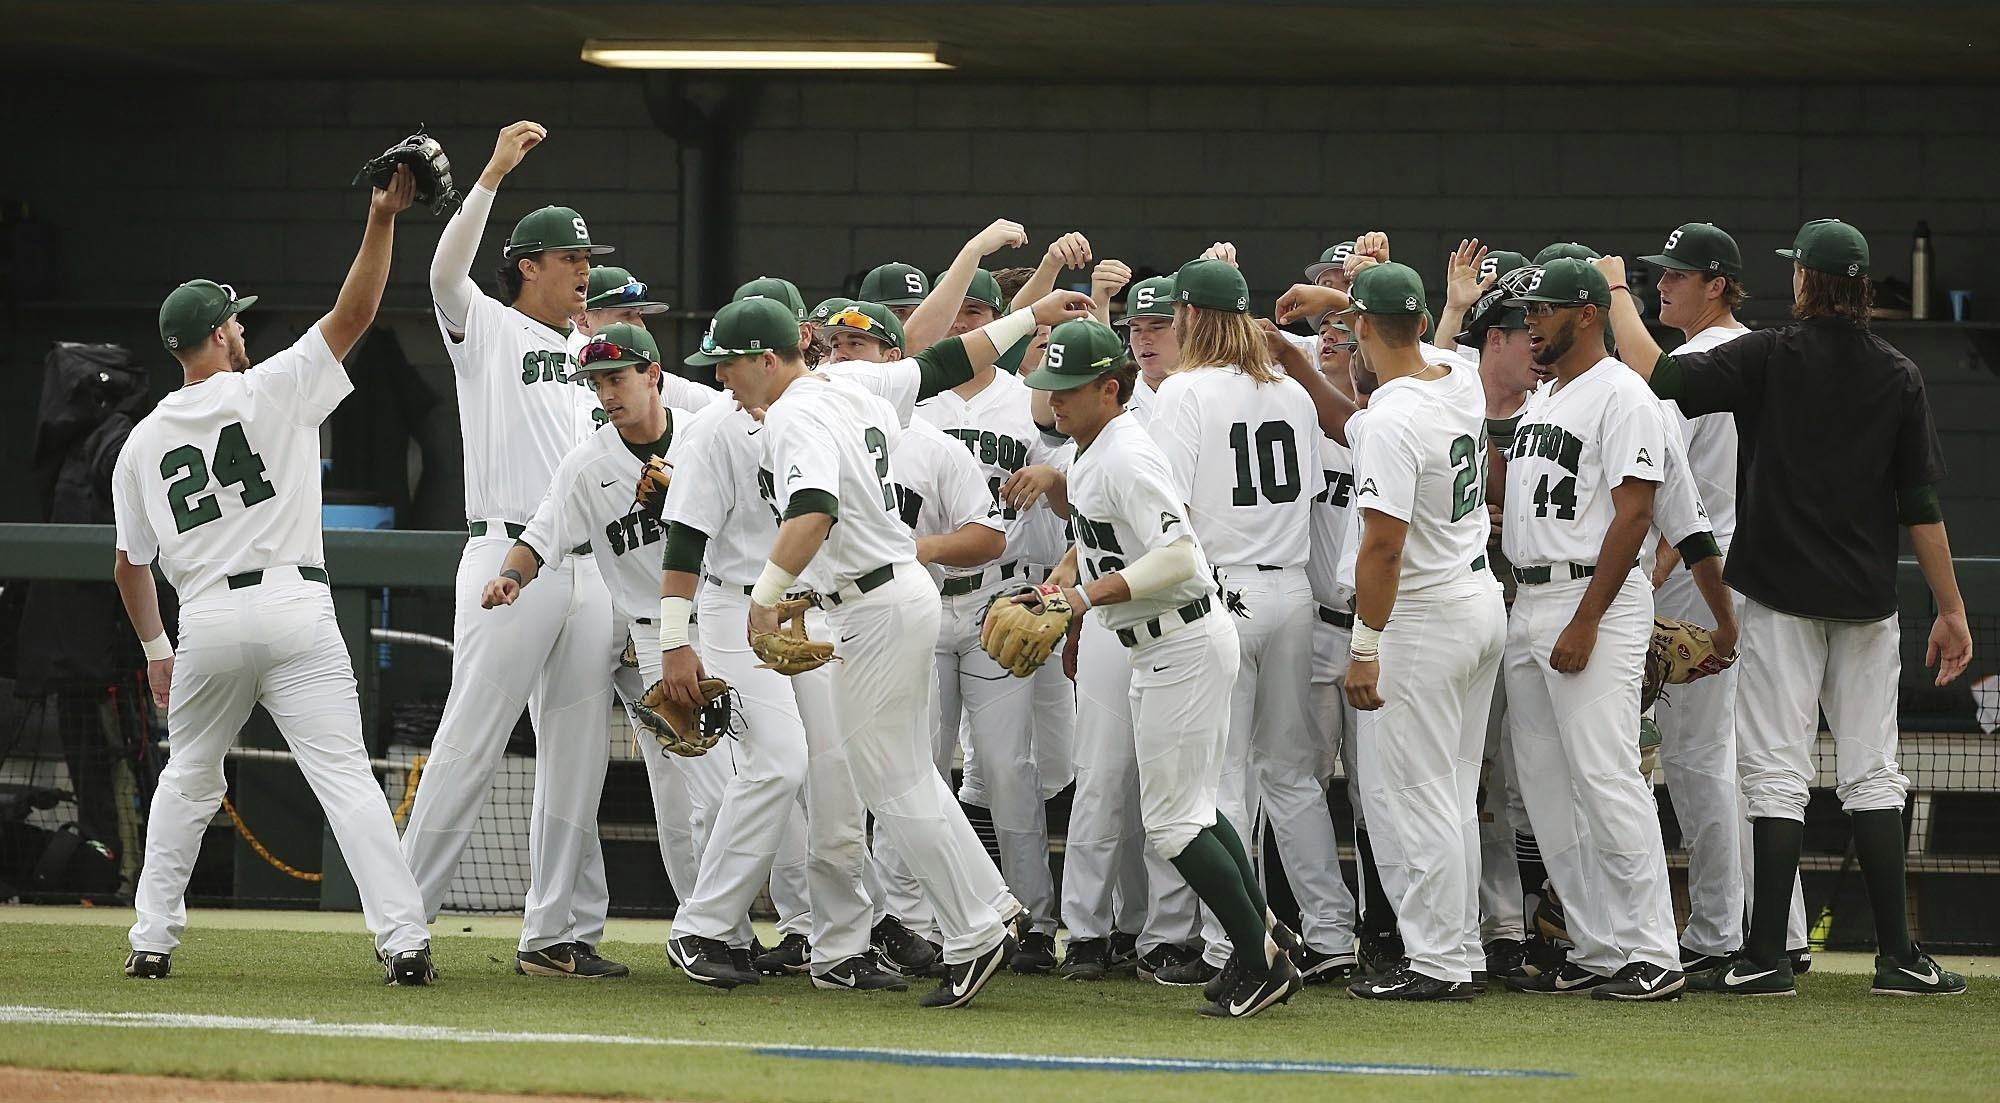 Stetson defeats Oklahoma State in NCAA's DeLand Regional